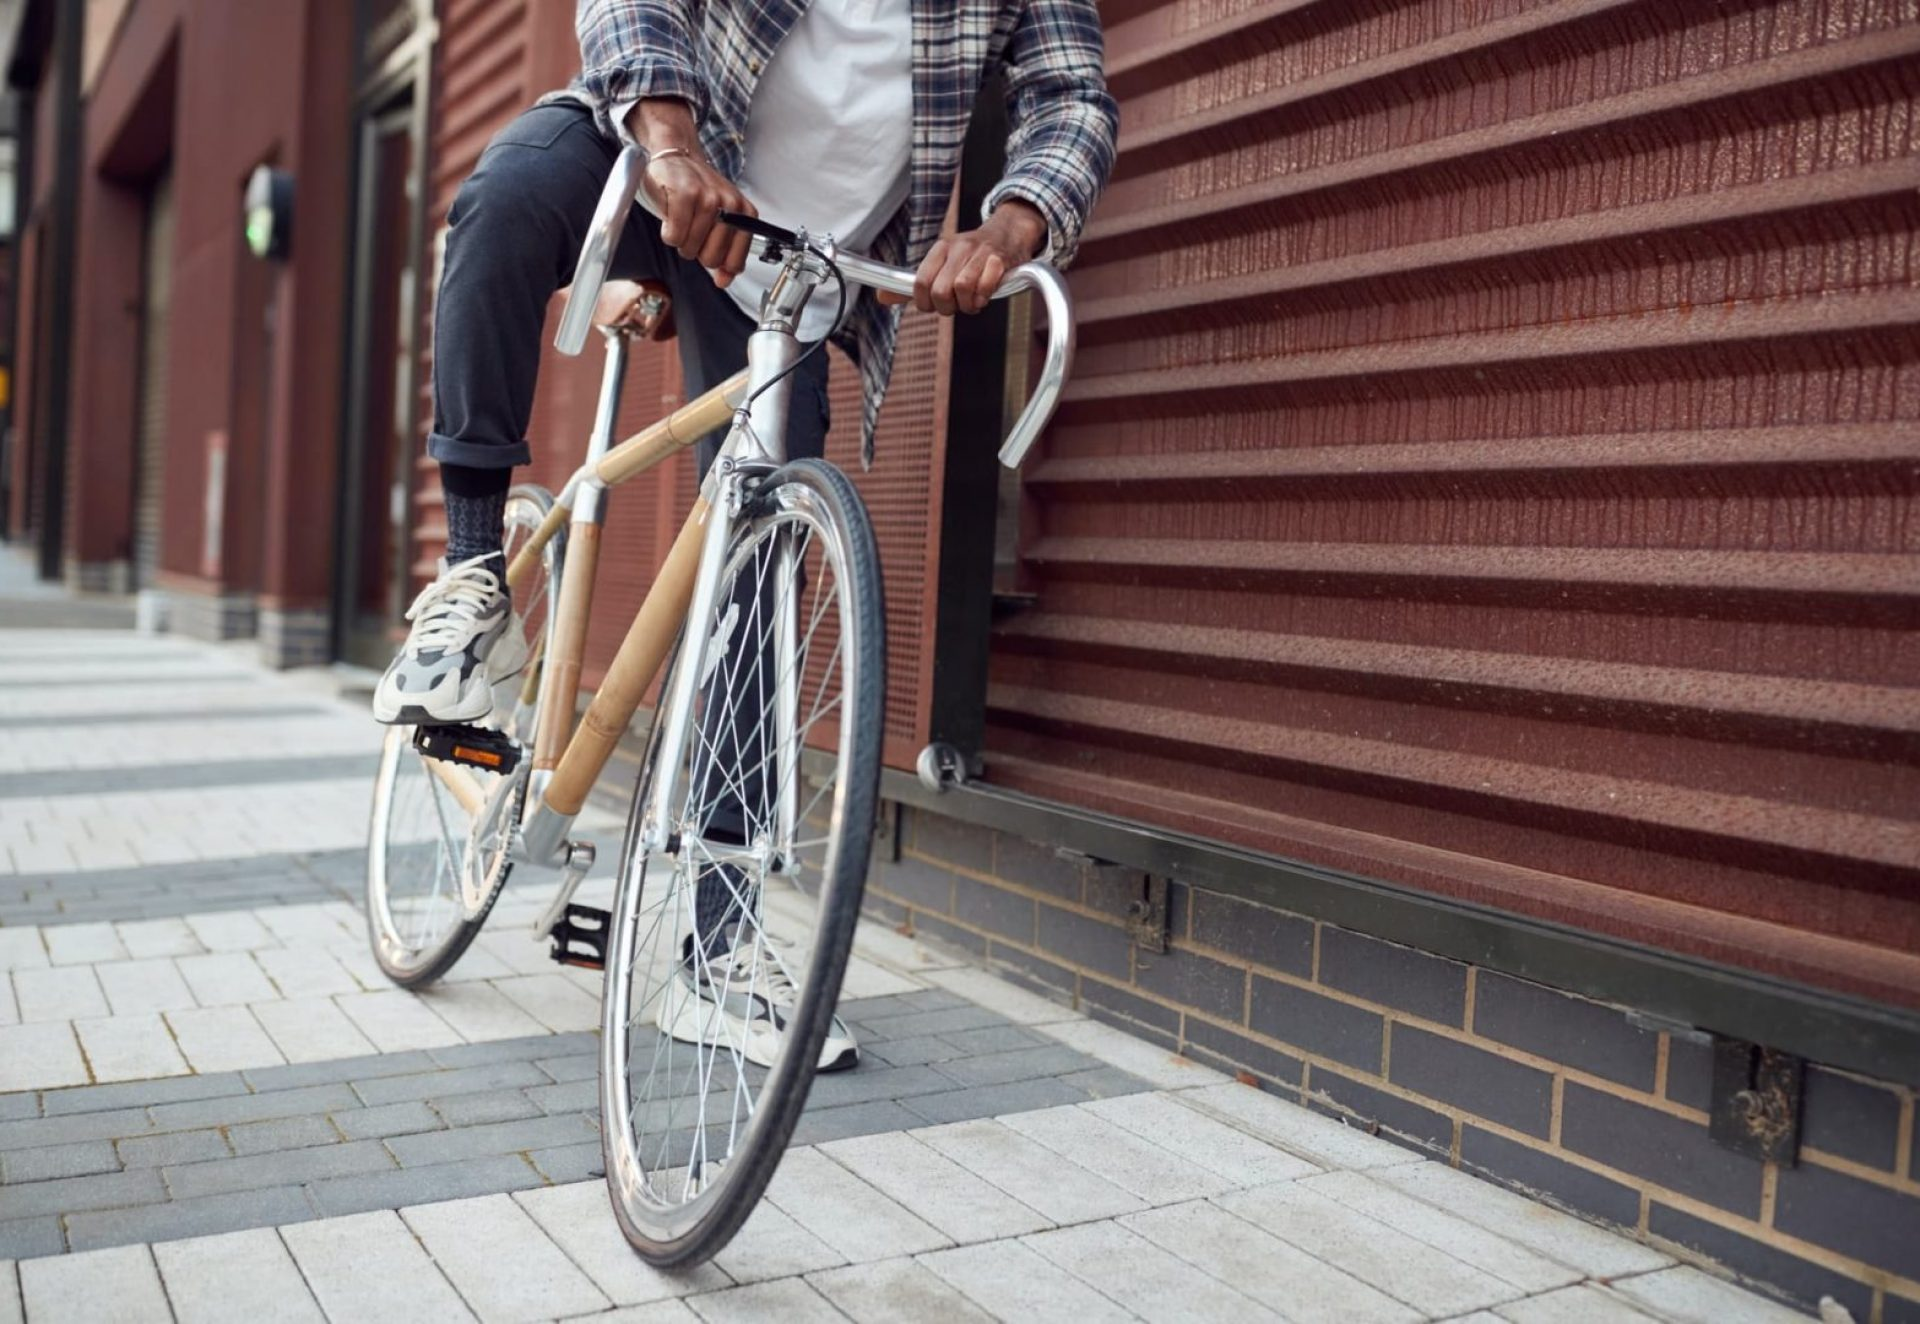 Close Up Of Man Riding Sustainable Bamboo Bicycle On City Street